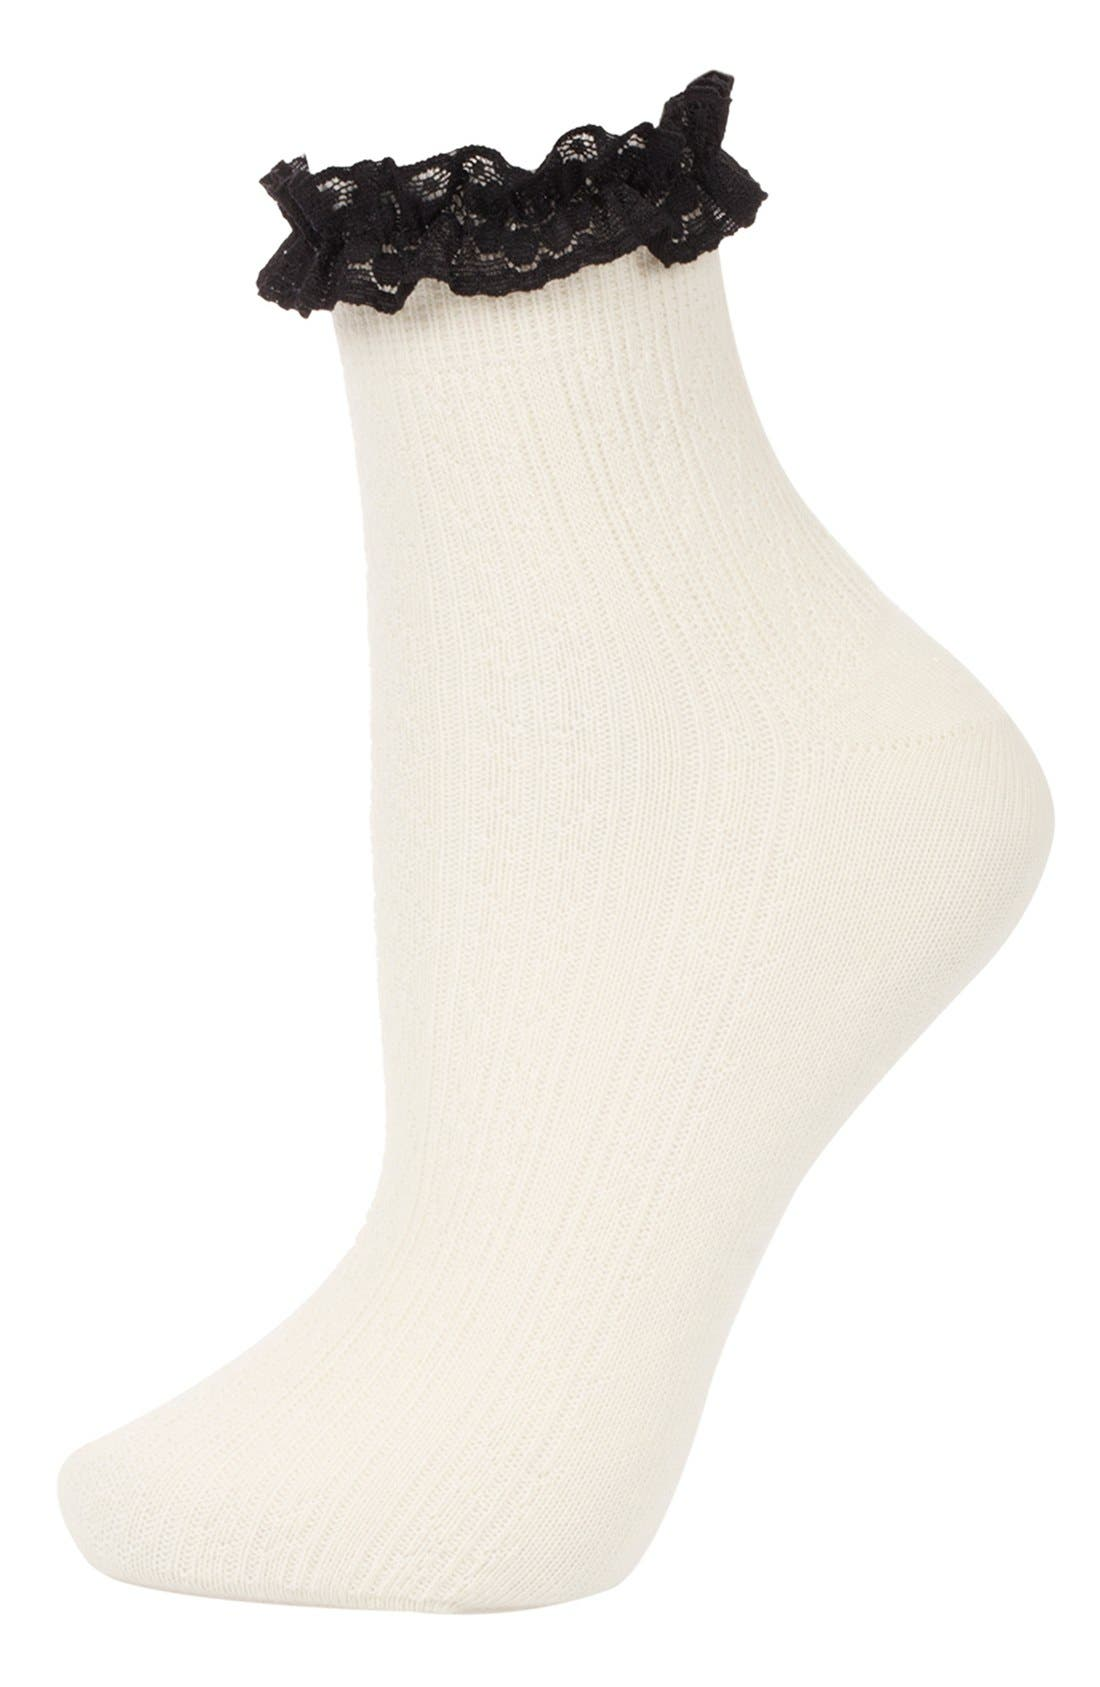 Main Image - Topshop Lace Trim Ankle Socks